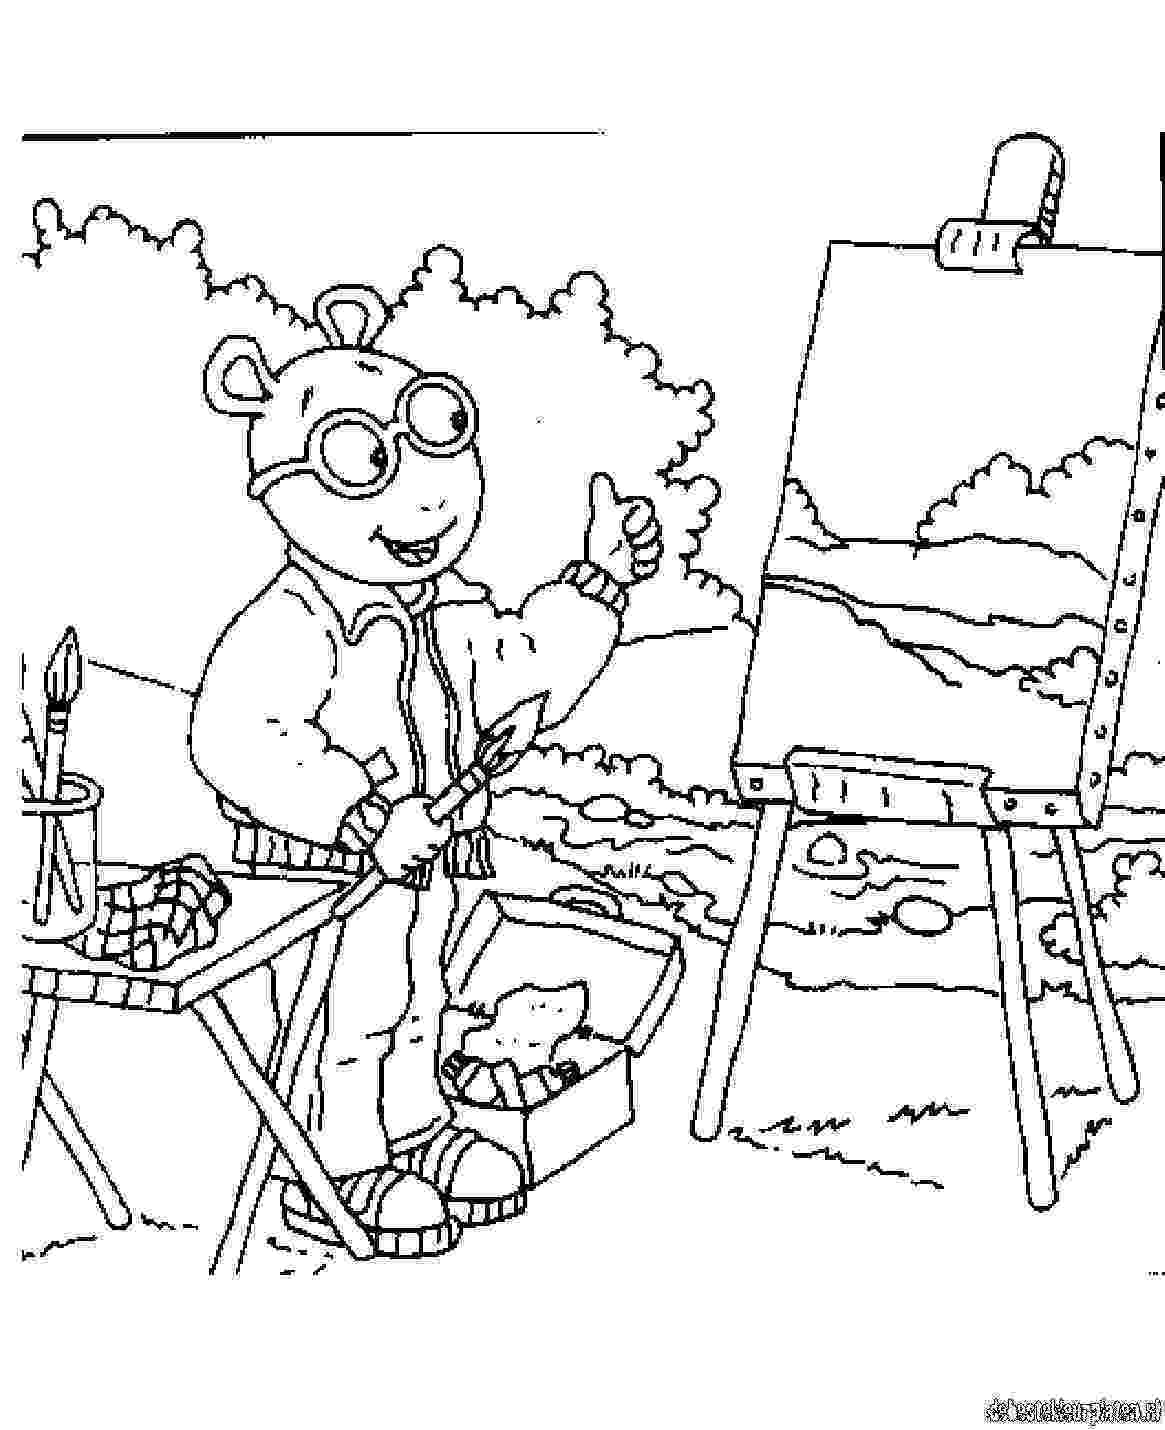 arthur coloring pages 25 best images about dibujos arthur on pinterest arthur coloring pages